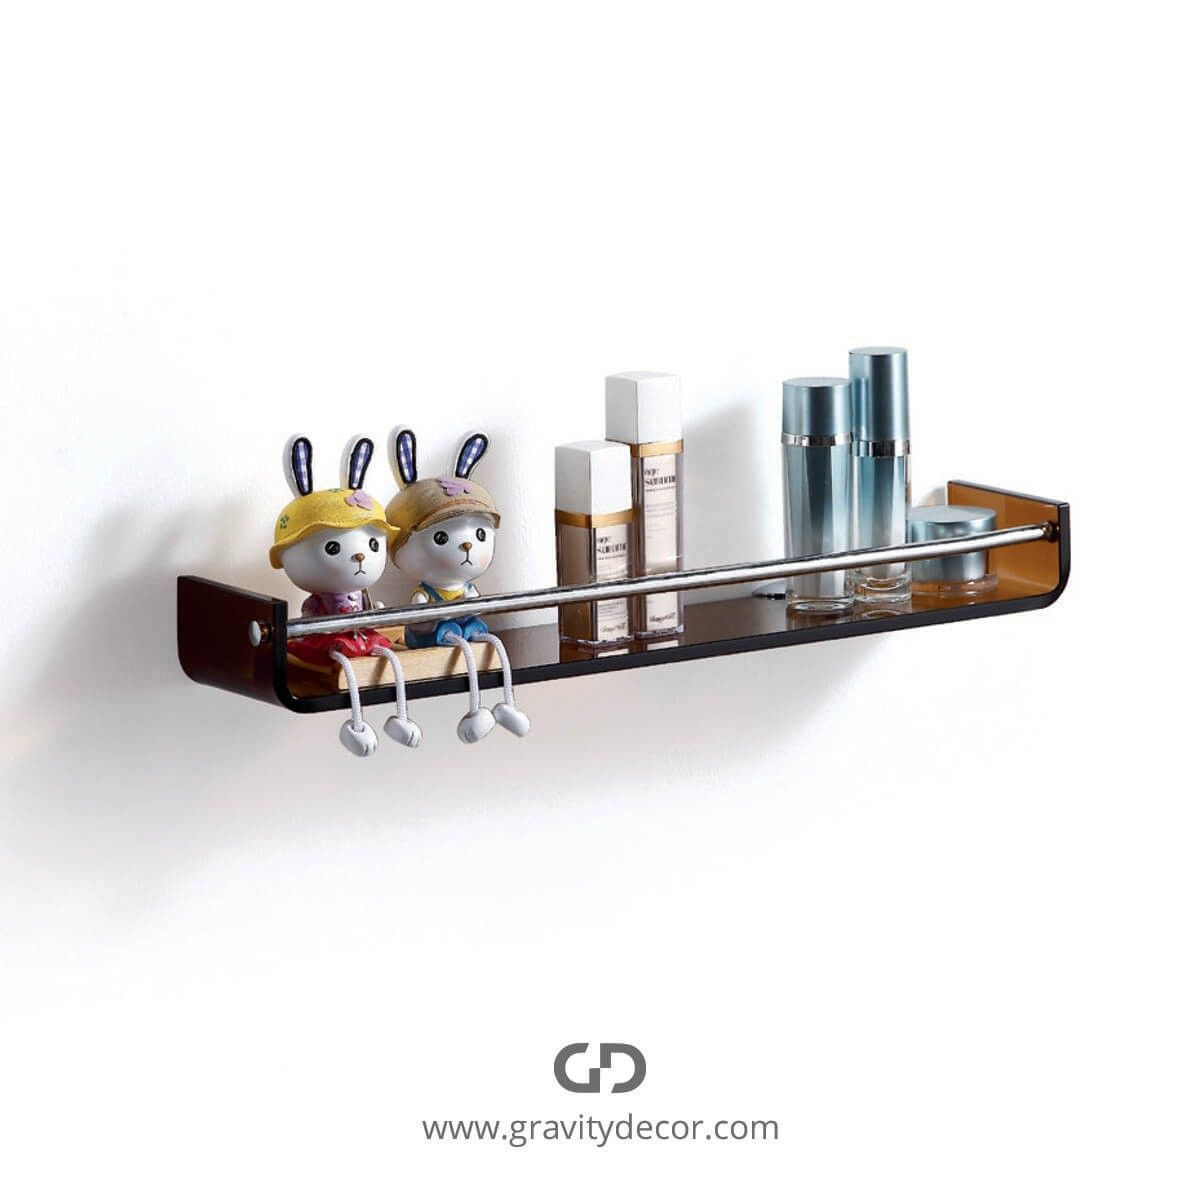 TINTED BROWN STYLISH GLASS SHELF WITH CHROME TOWEL BAR $79.99 IN ...